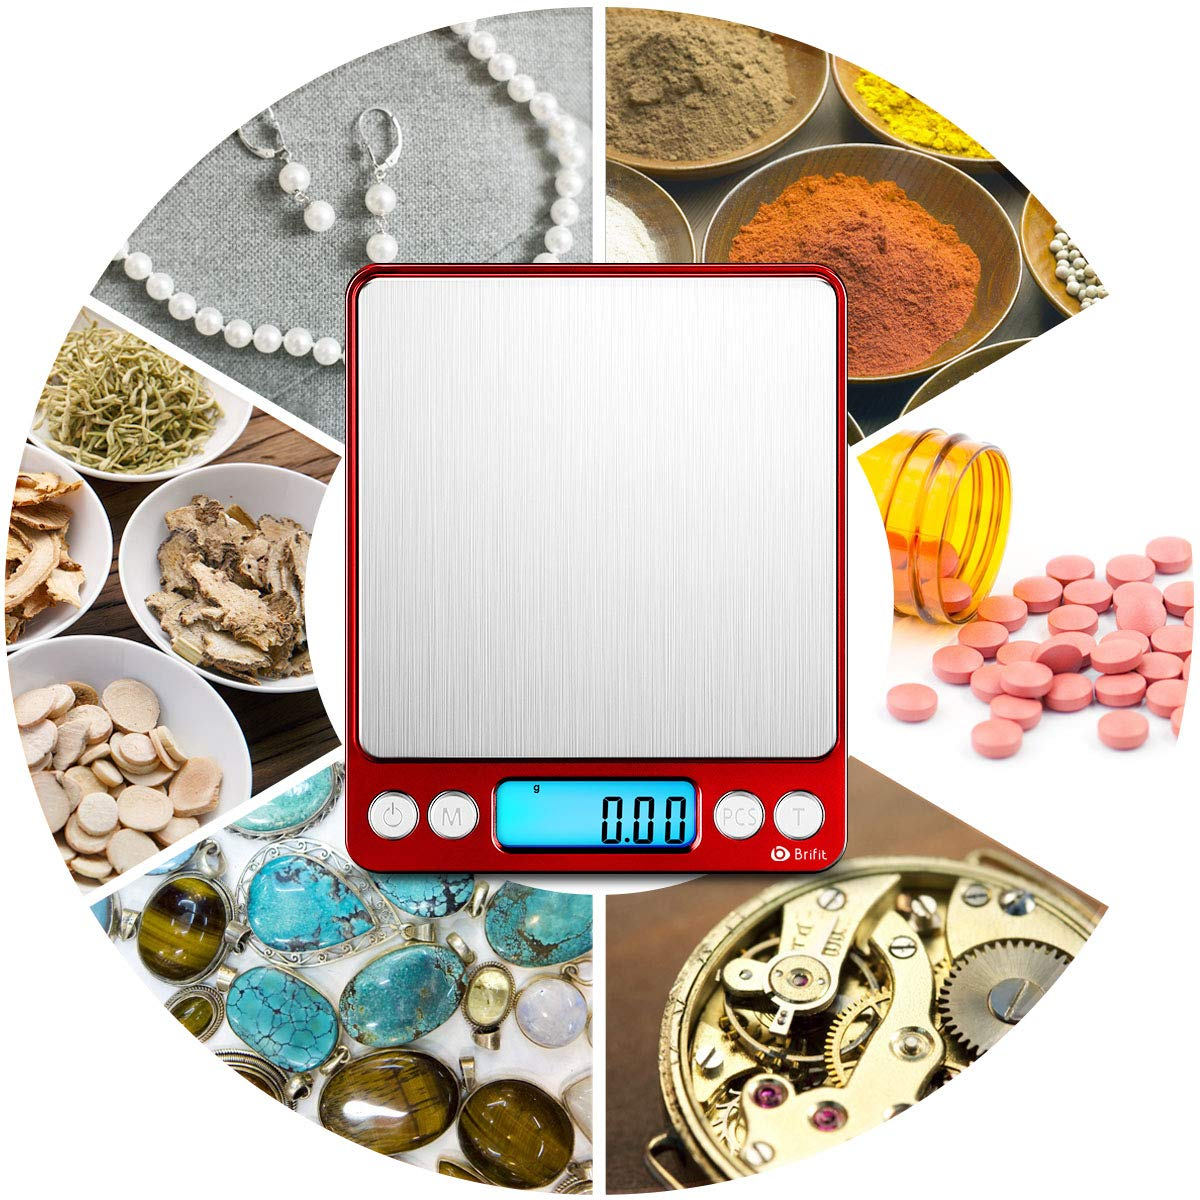 [2019 New] Brifit Digital Kitchen Scale, 500g/ 0.01g Mini Pocket Jewelry Scale, 100g calibration weight, Cooking Food Scale, Back-Lit LCD Display, 2 Trays, 6 Units, Auto Off, Tare, Stainless Steel